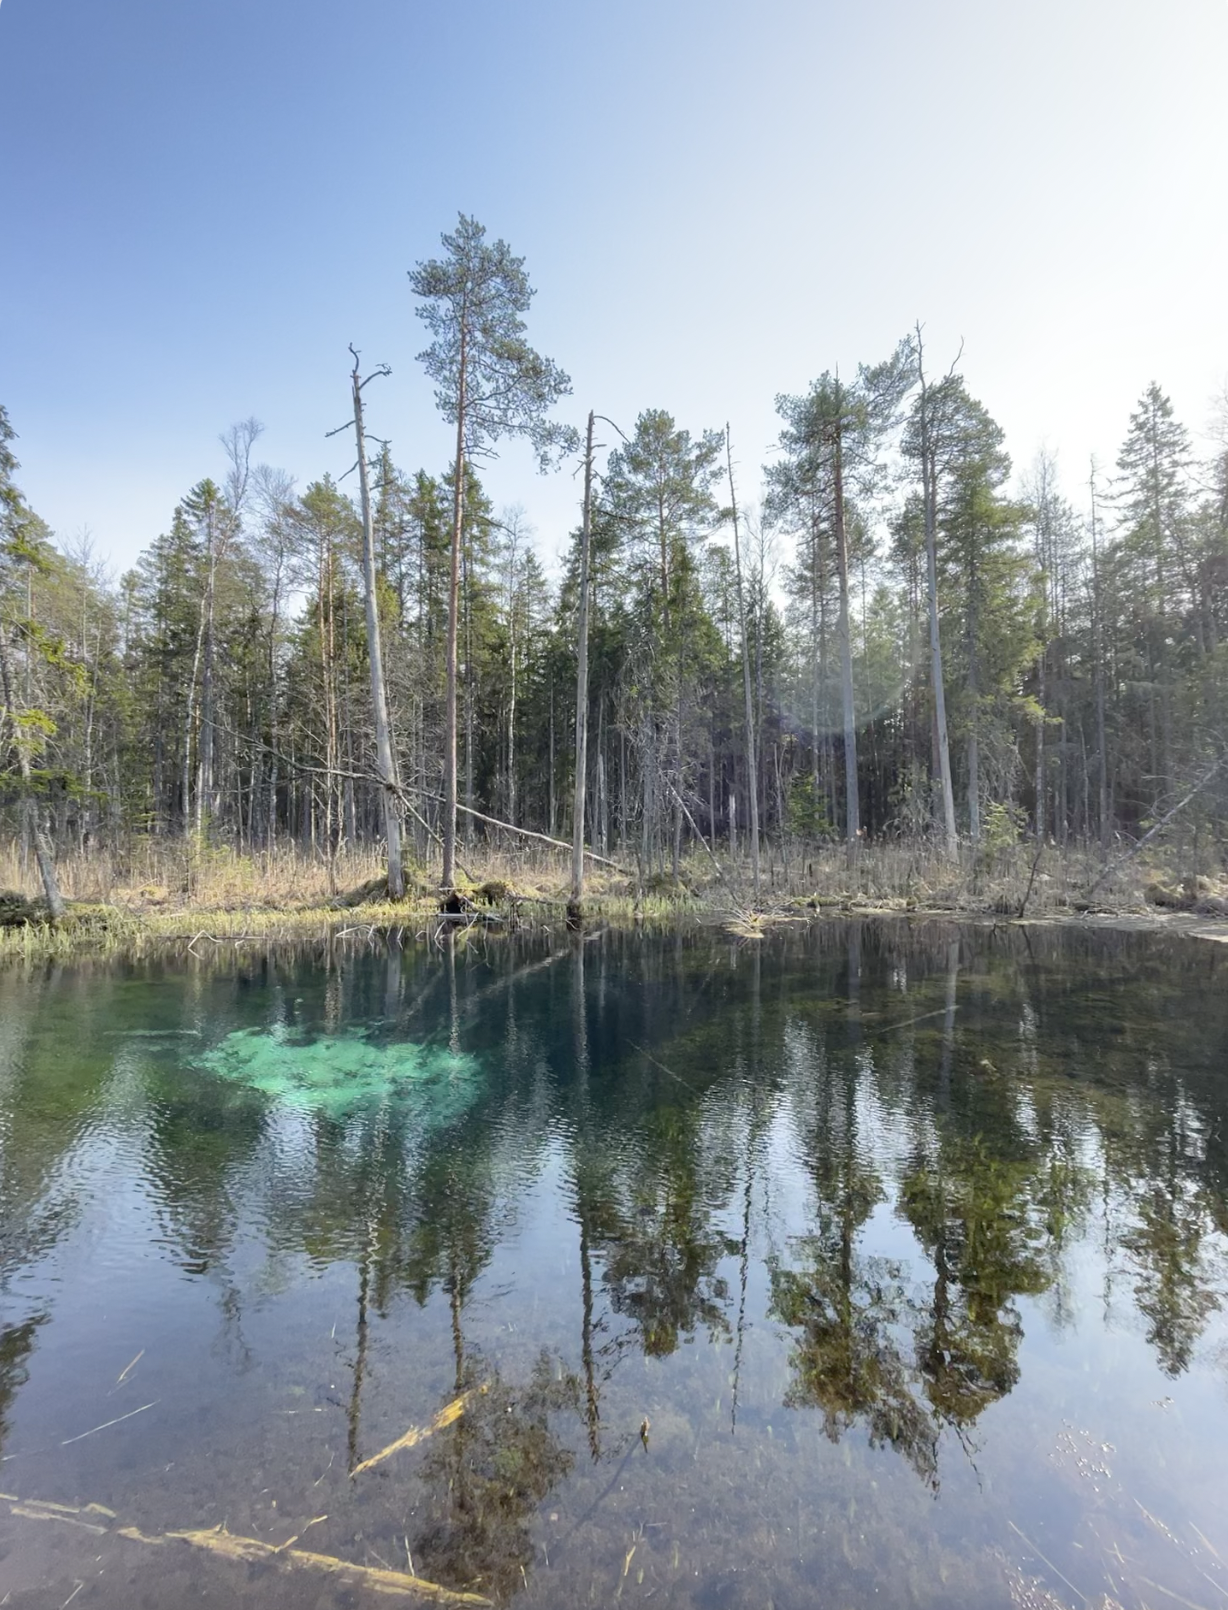 Hiking by Watersources in Estonia